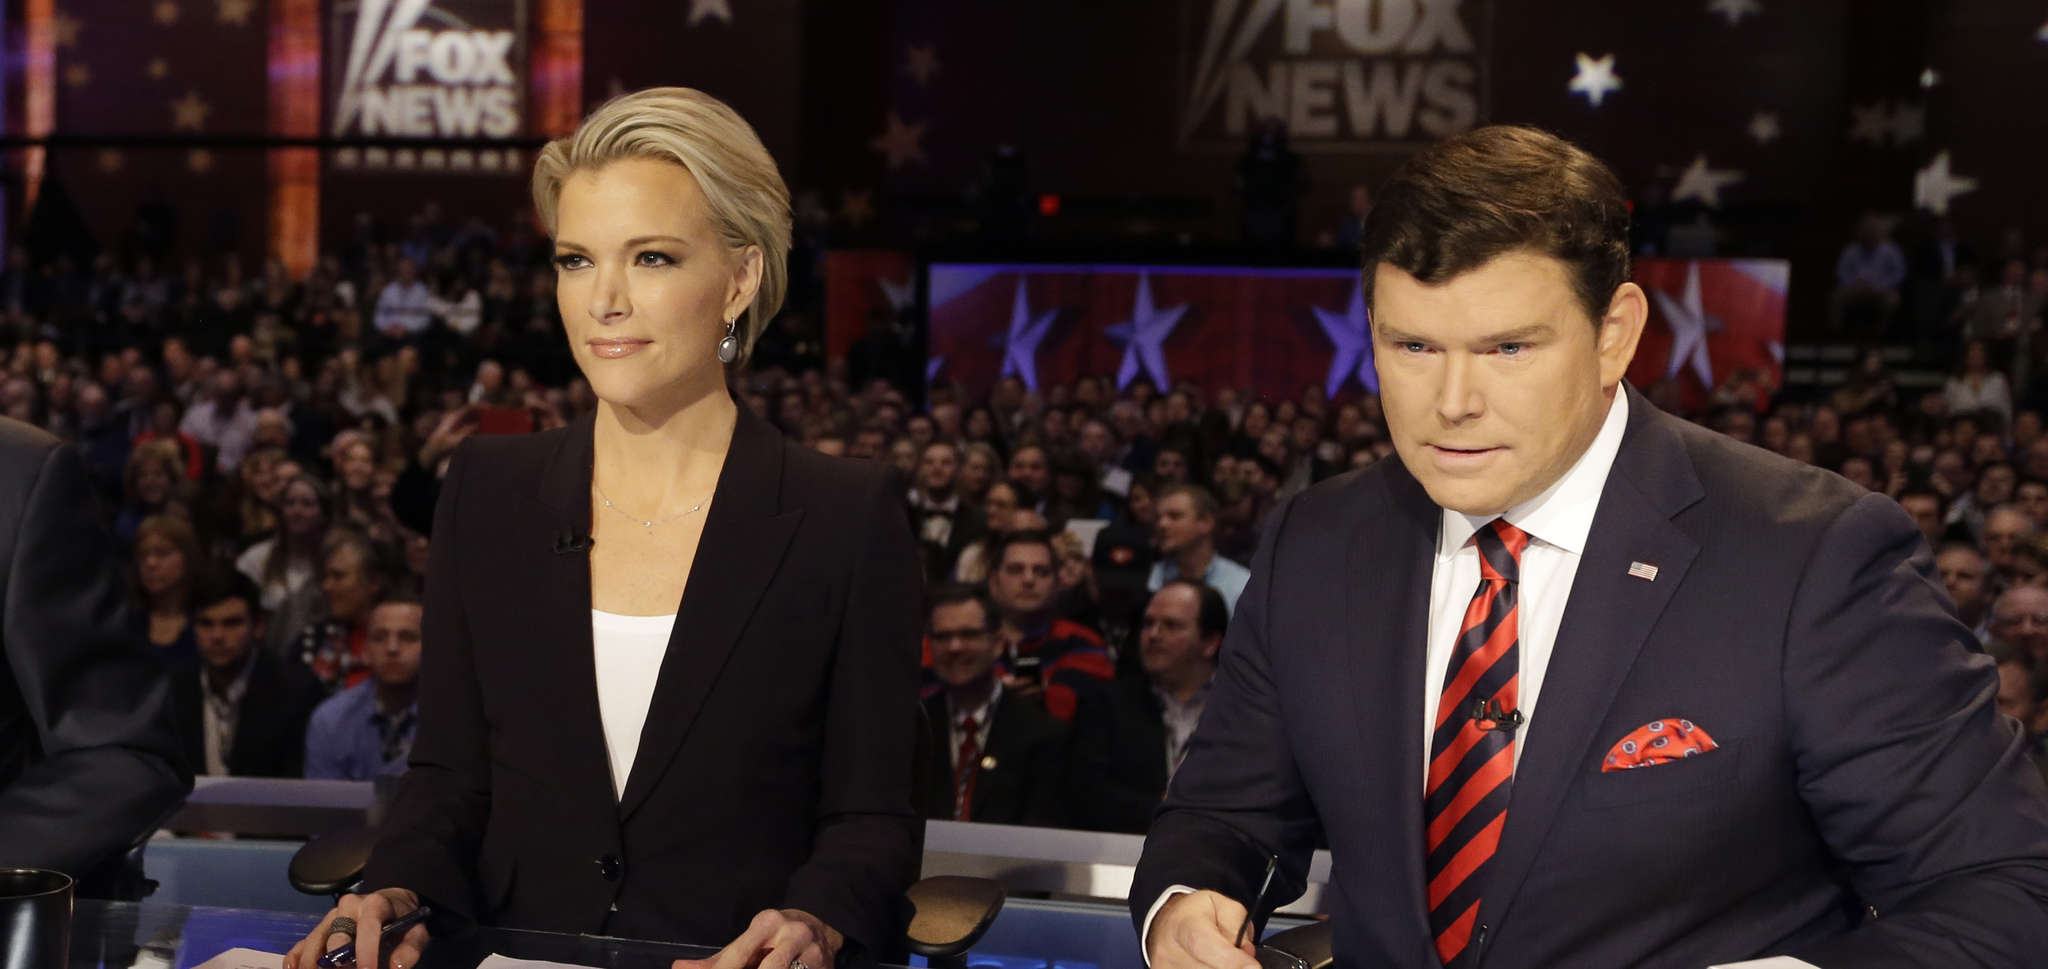 On the Fox News Channel, Megyn Kelly and Bret Baier will cover the conventions.